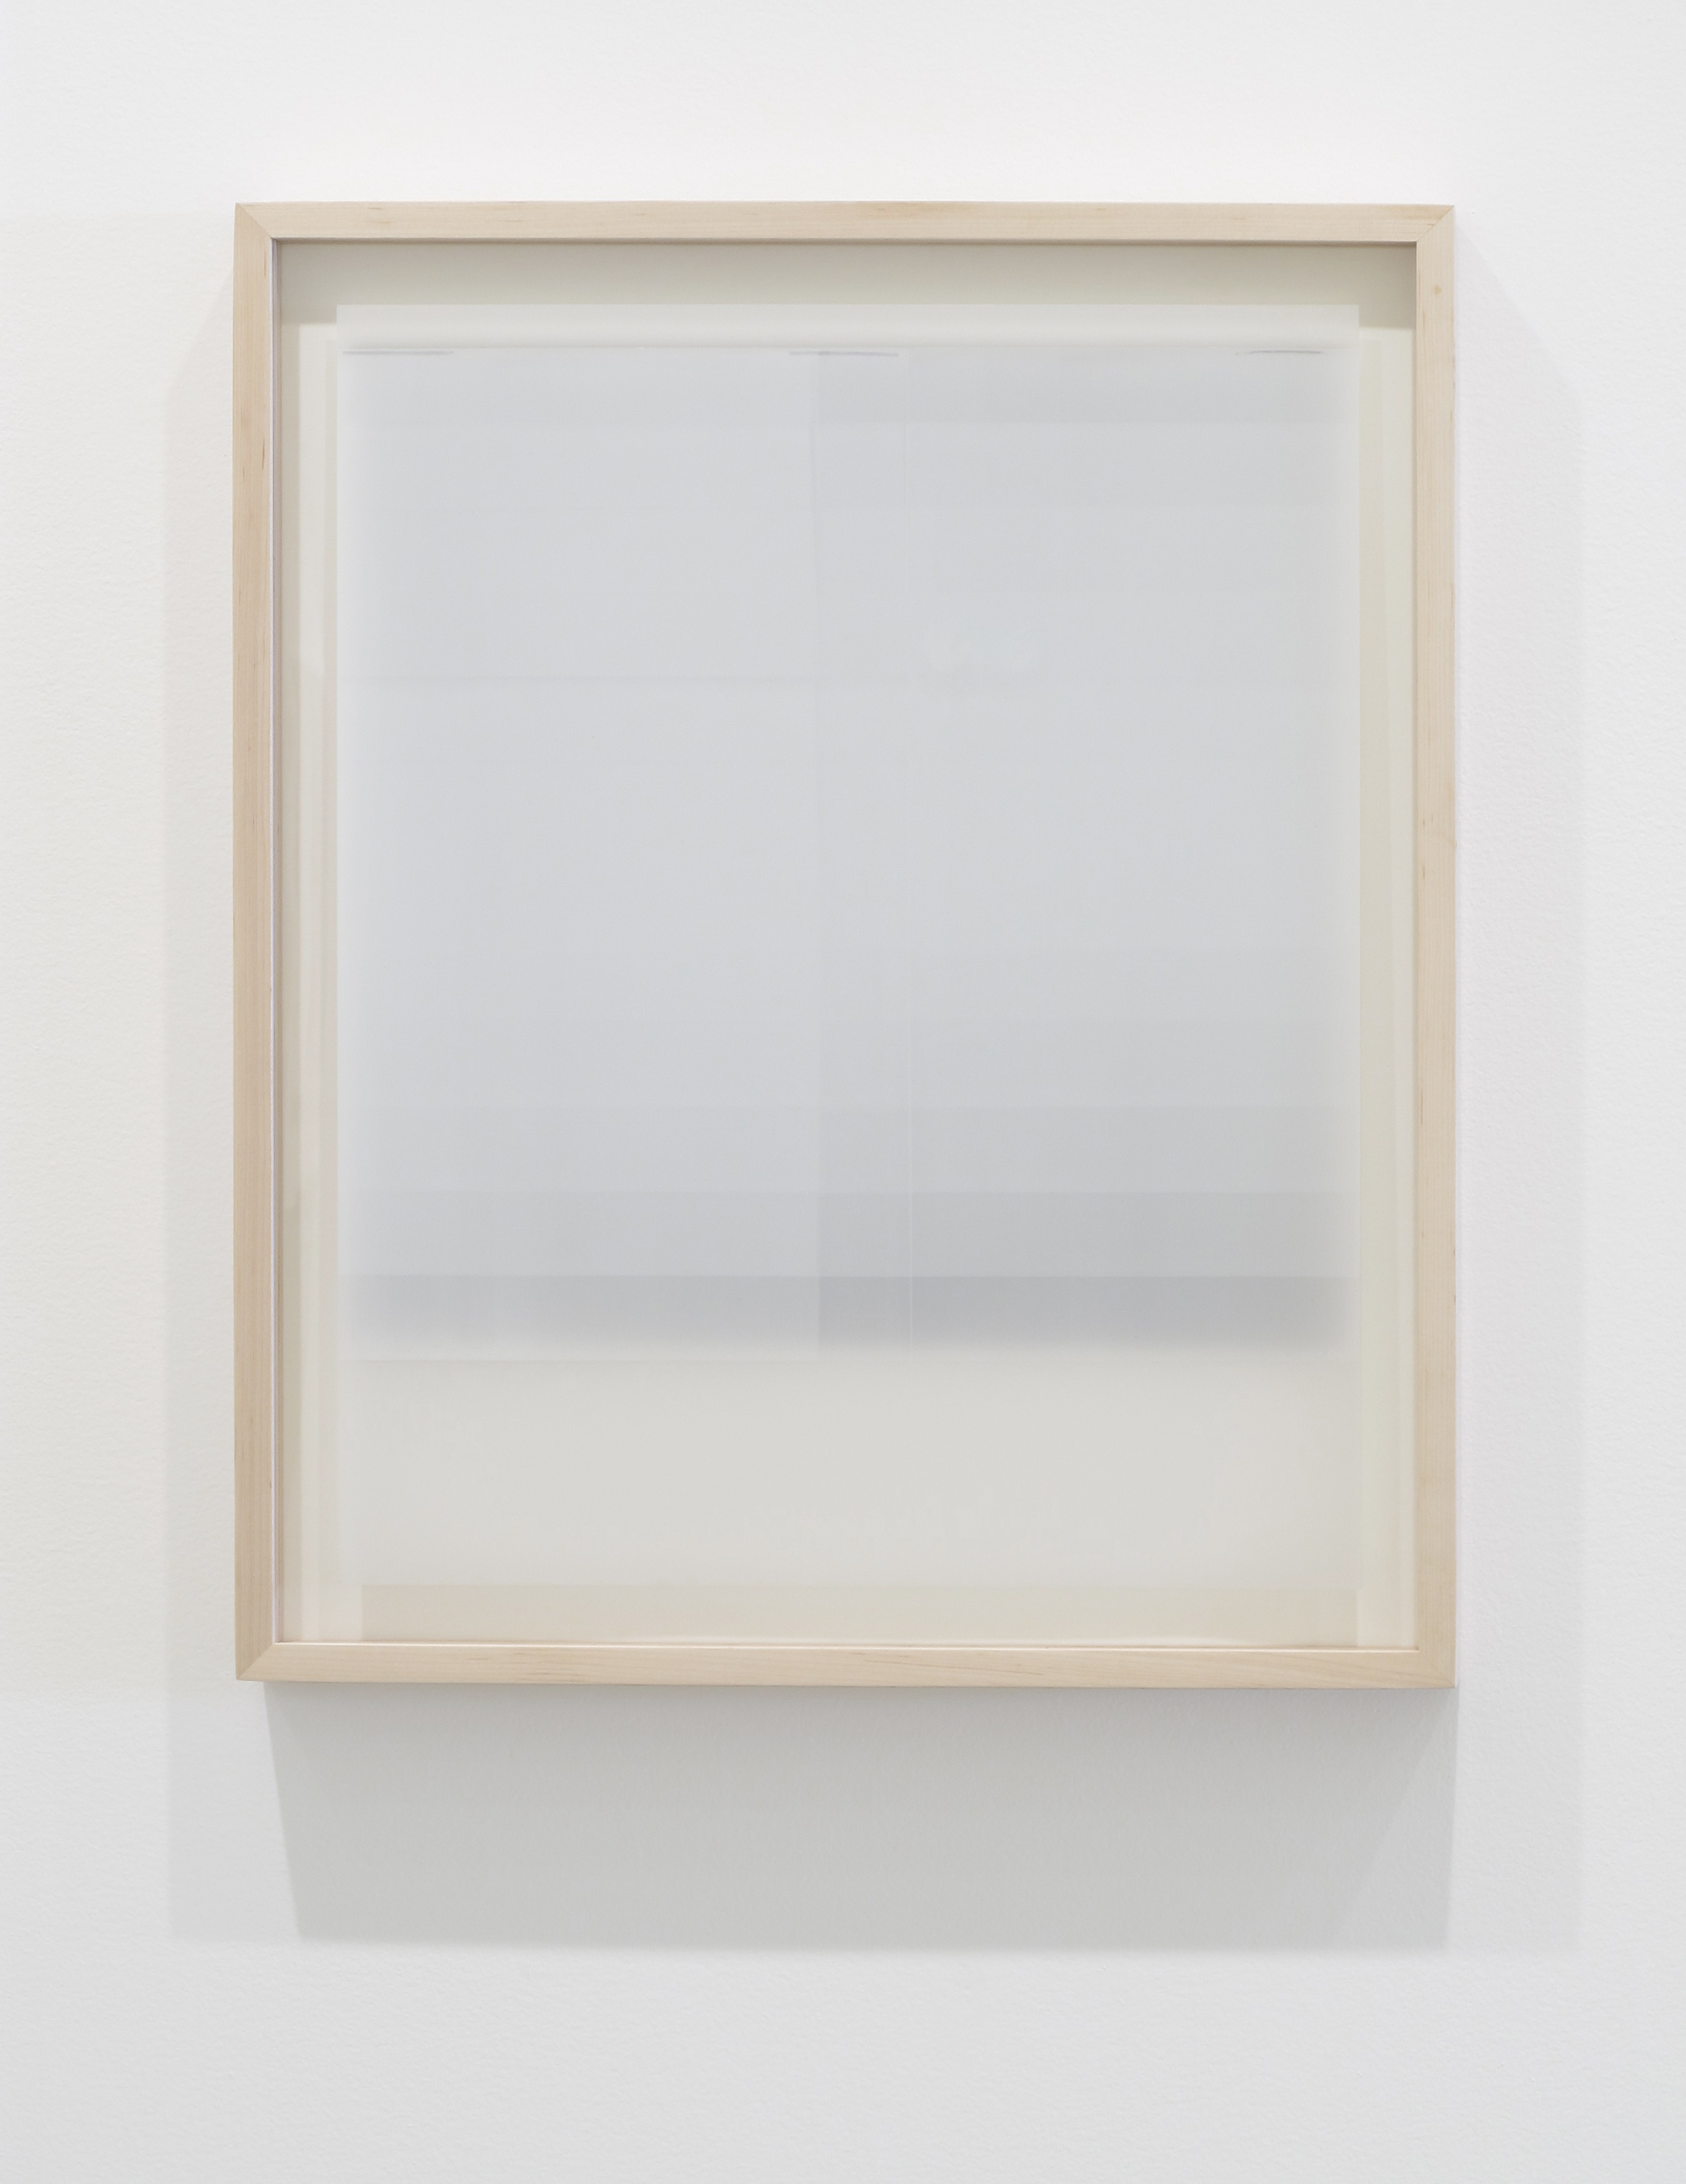 Untitled (white, from the series reflected/repeated - light becomes form, the horizon rests into view)  2015. Oil based ink painted on frosted mylar. Layered on plexi, with grey board dropped slightly behind. 20 x 25 inches (unframed)